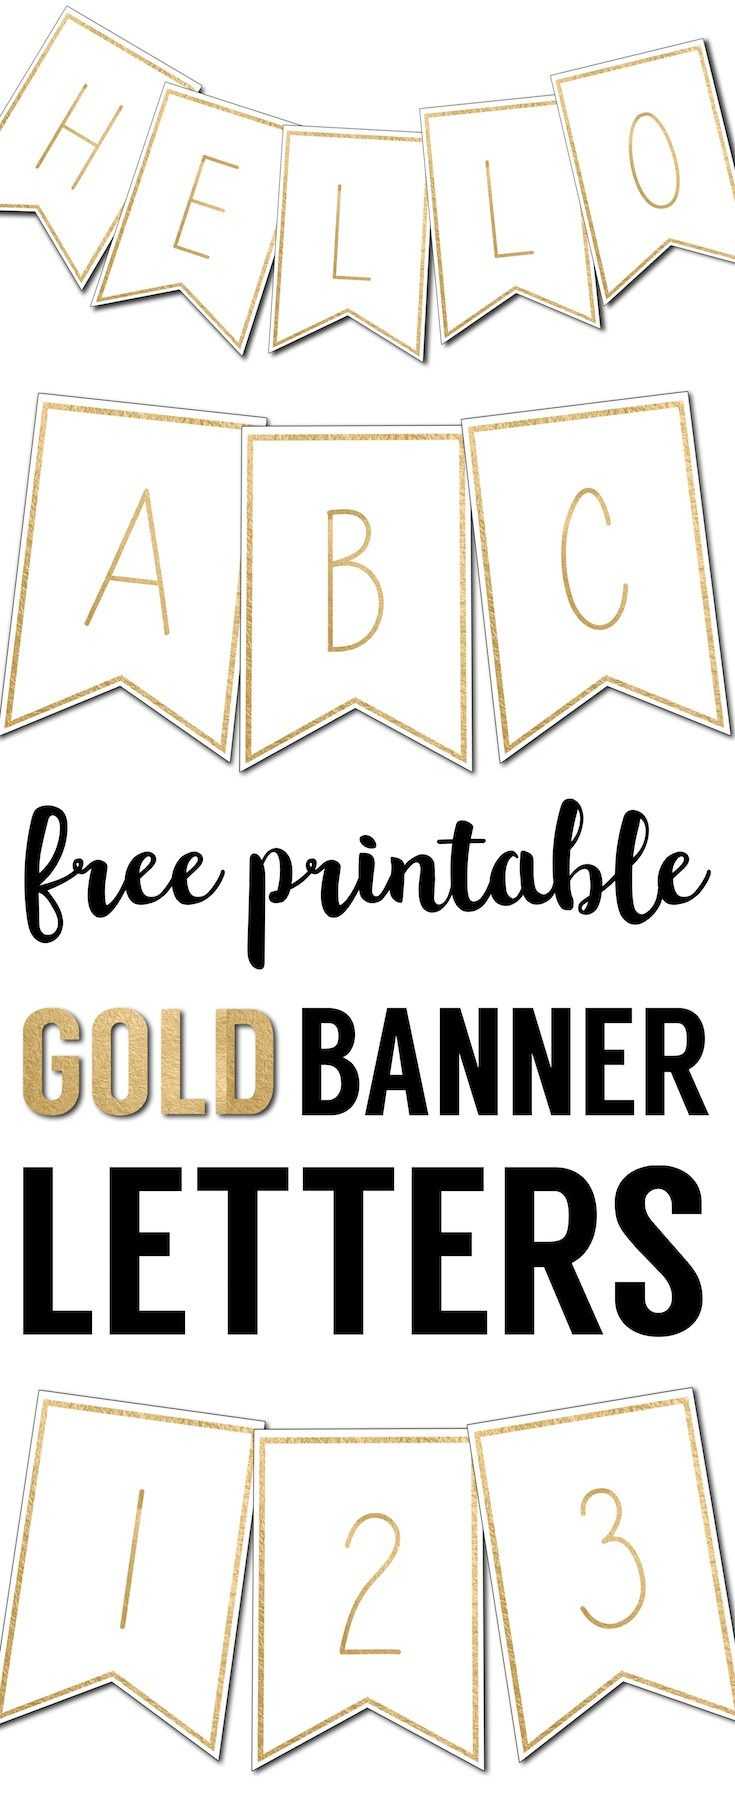 Free printable banner letters templates the wedding stuff free printable banner letters template complete gold letters and numbers for banners diy to customize for a birthday party wedding bridal or baby shower spiritdancerdesigns Gallery